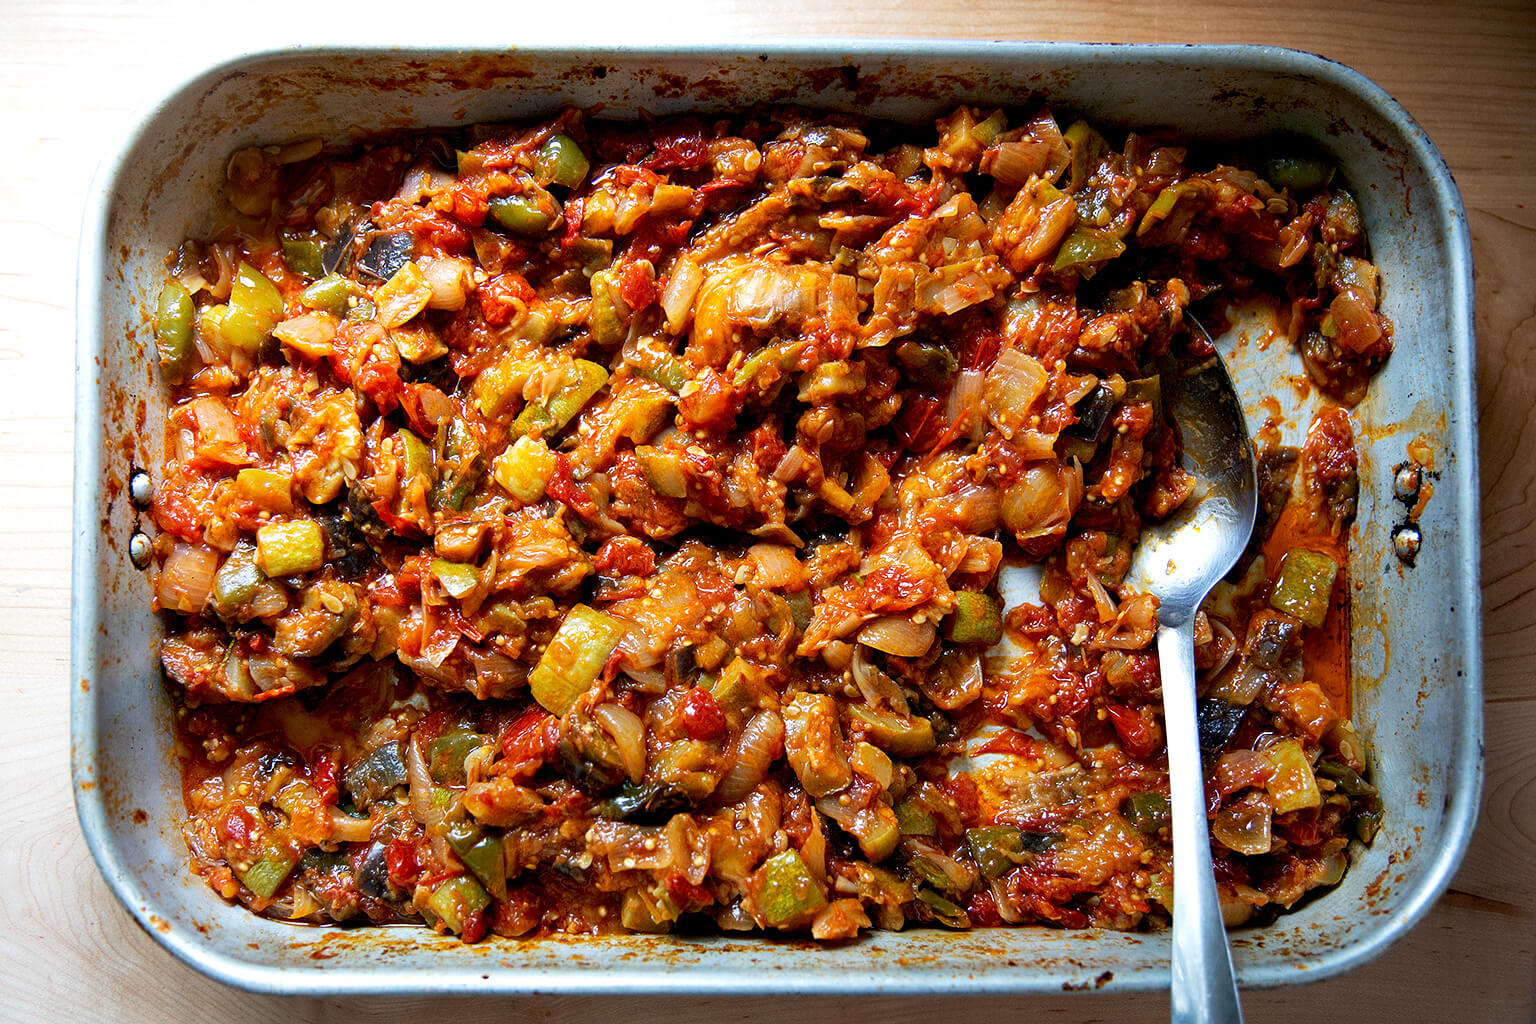 A roasting pan with roasted ratatouille